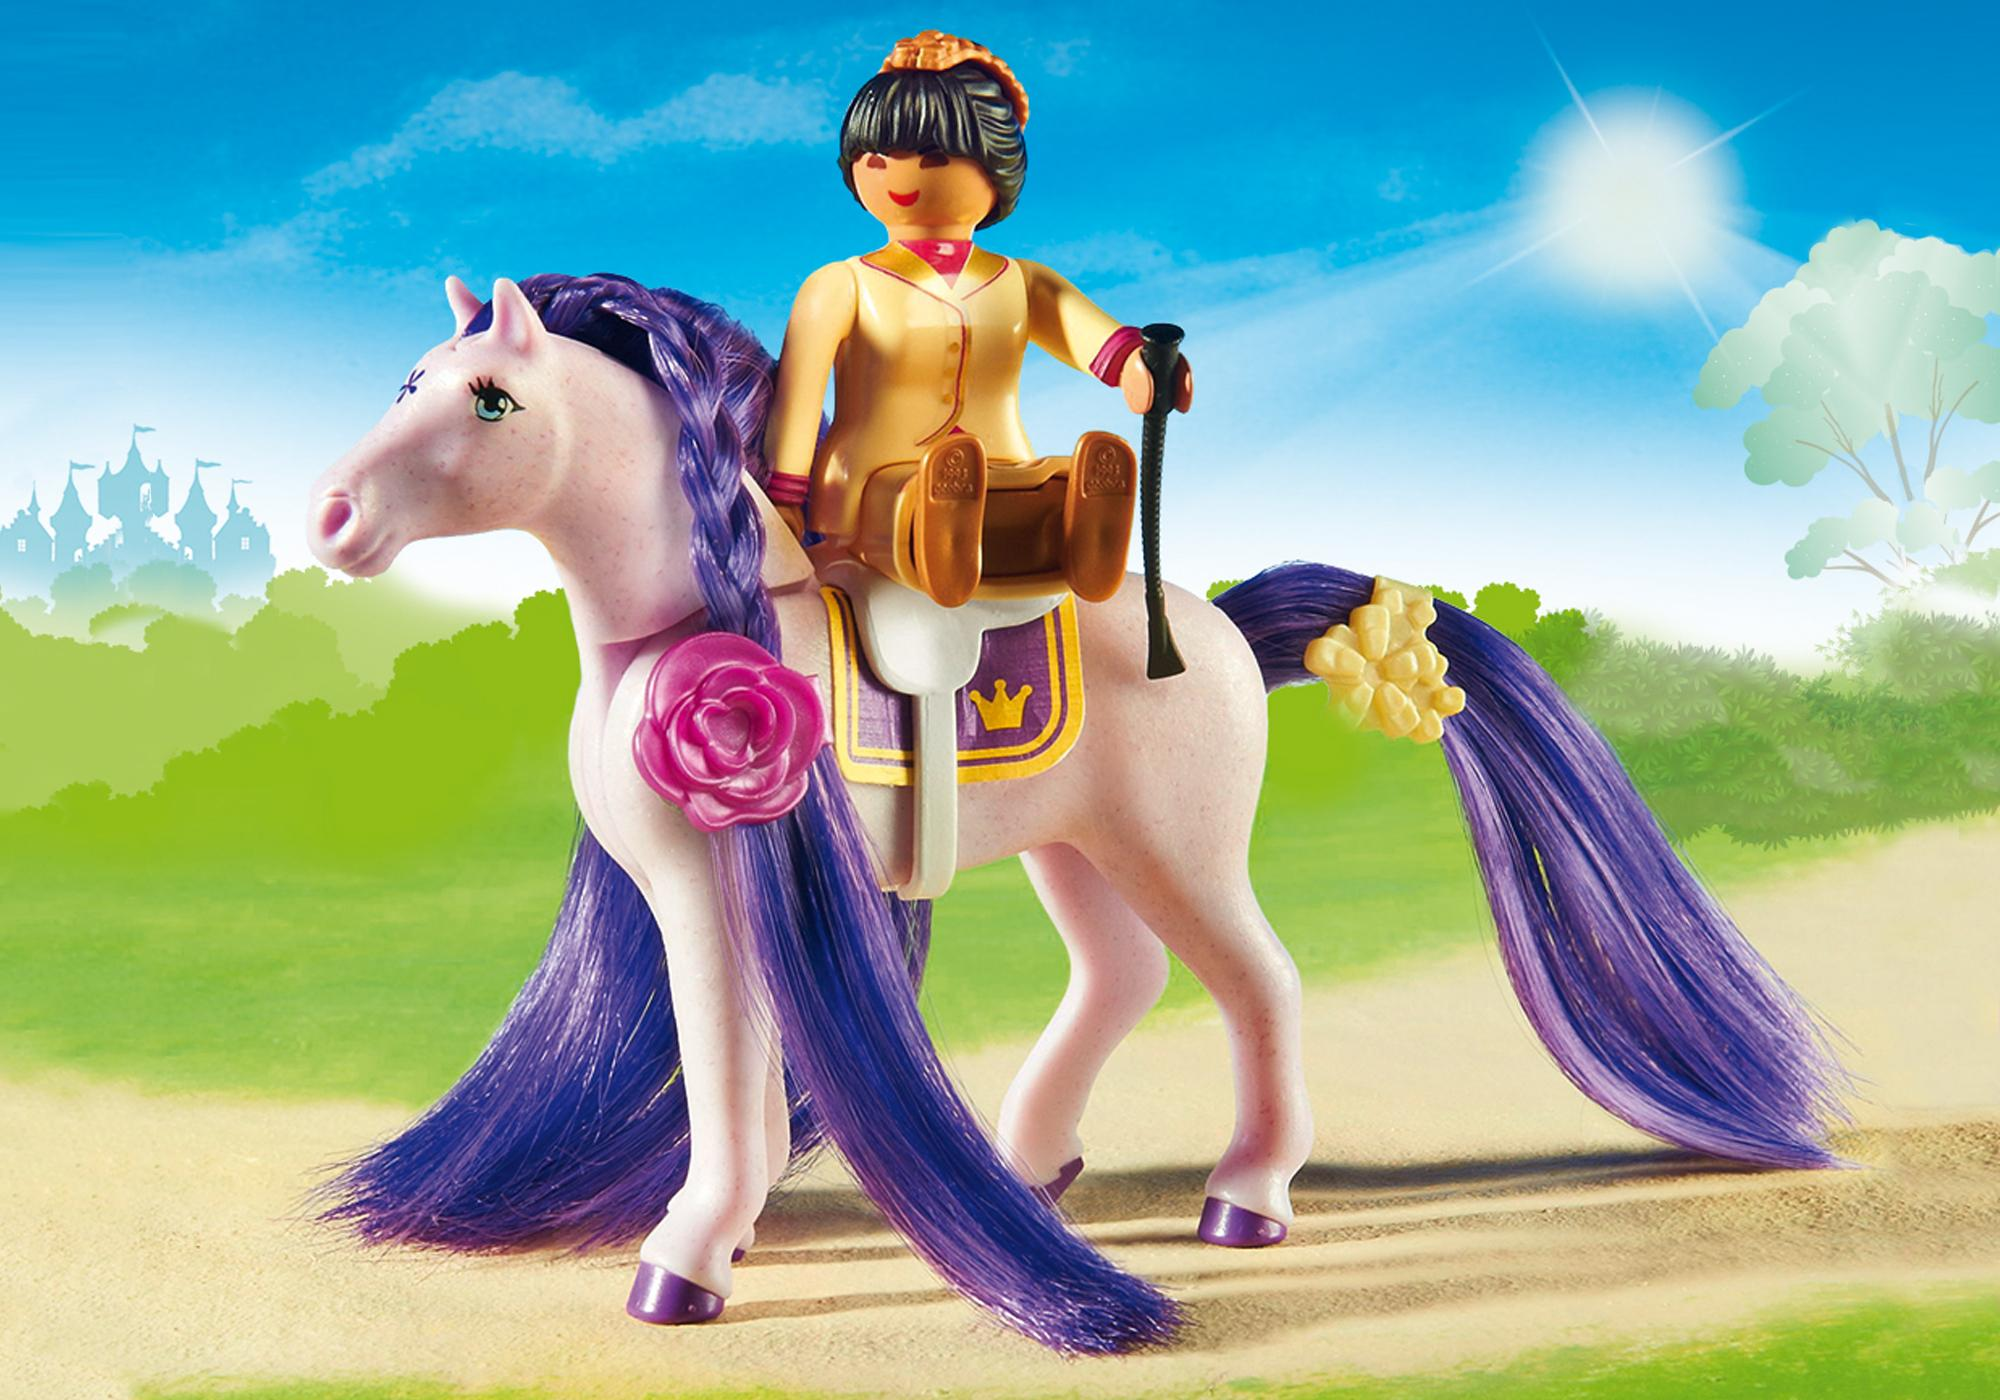 http://media.playmobil.com/i/playmobil/6855_product_extra1